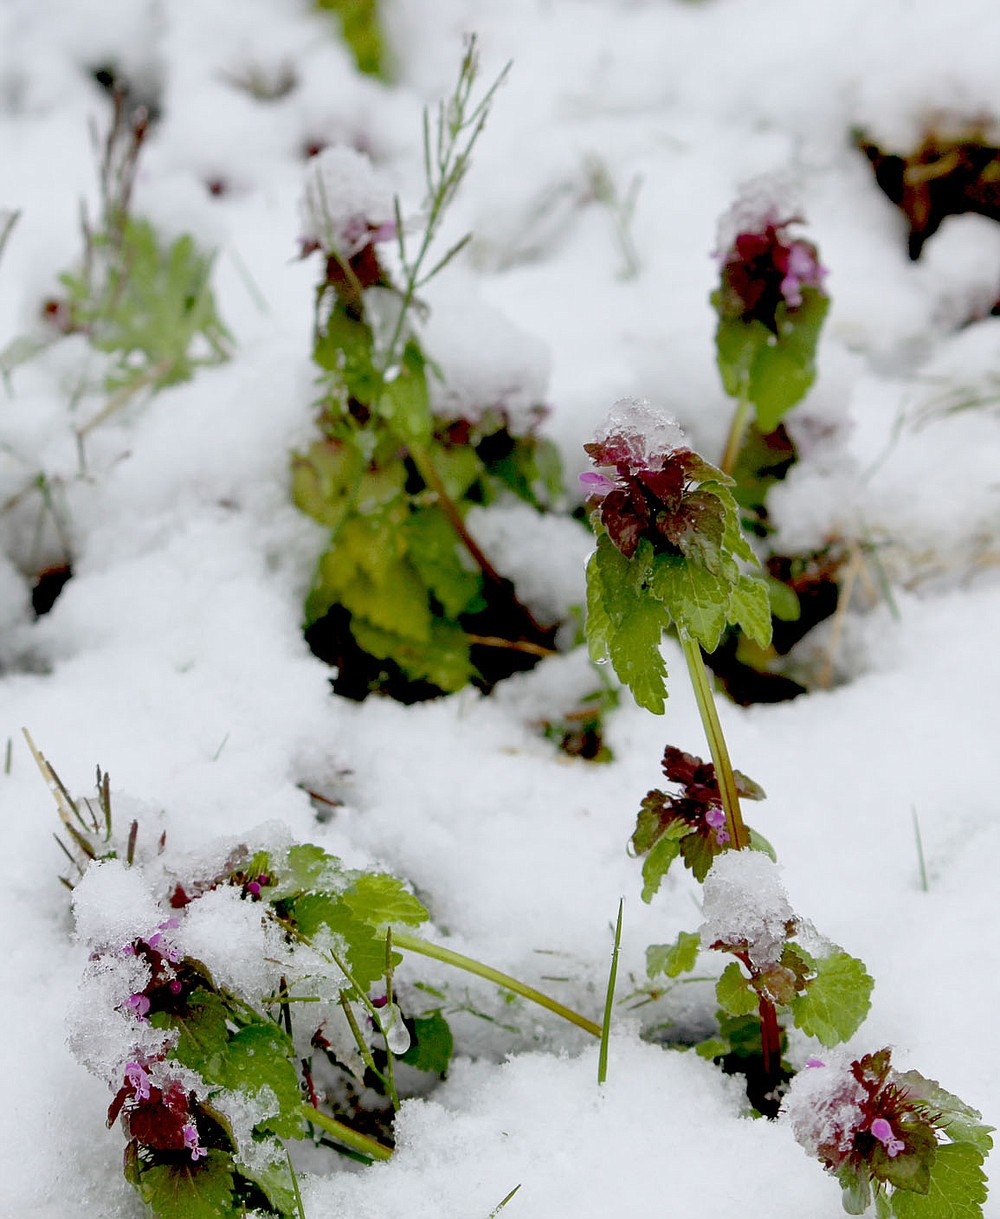 Keith Bryant/The Weekly Vista Purple dead nettles poke out from under the snow, each capped with a tiny bit of ice after last week's unusual snow.